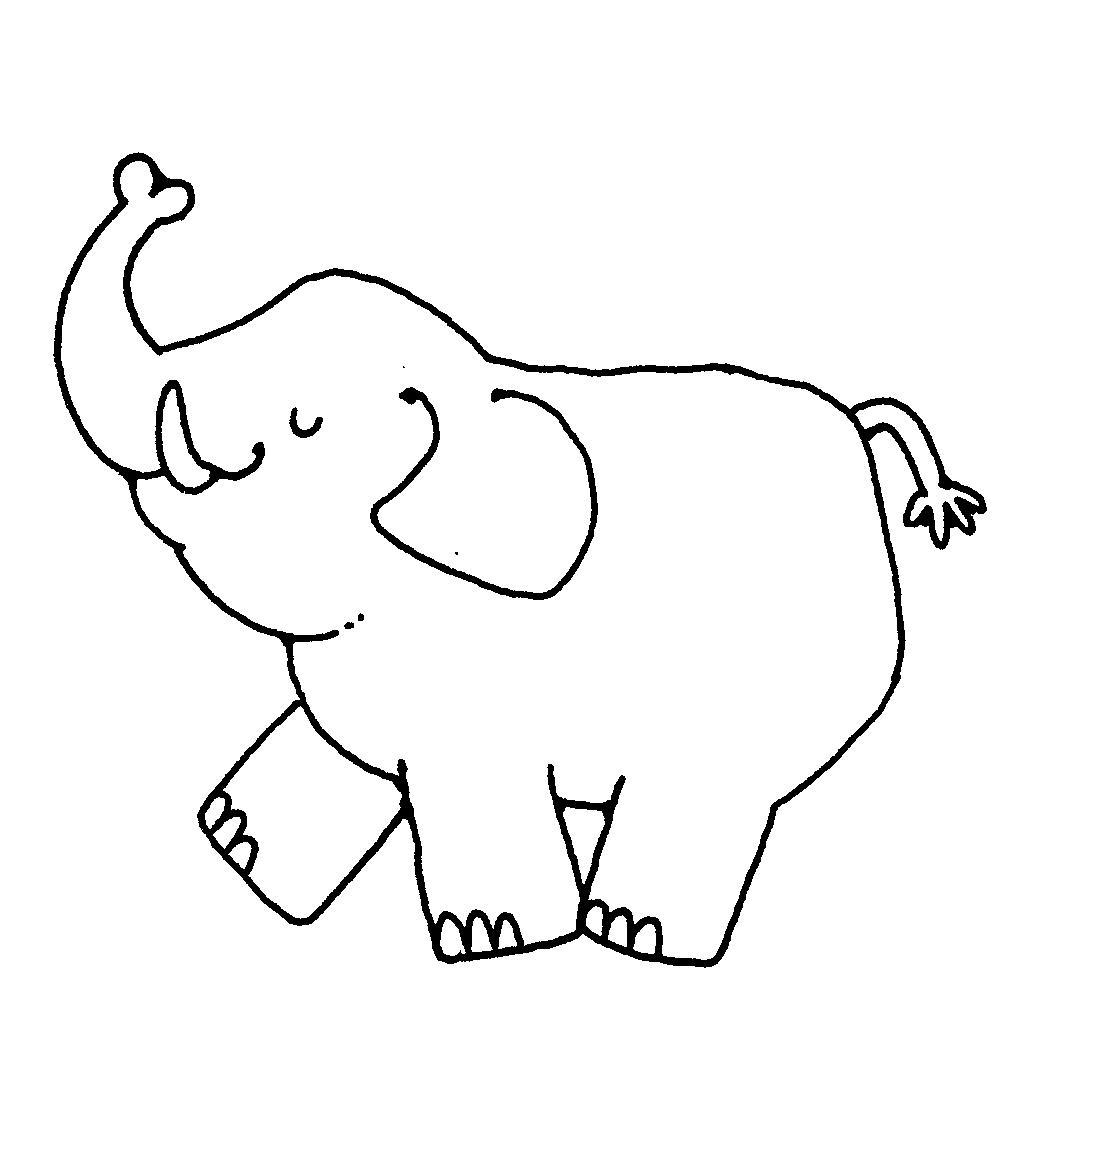 Free Elephant Images For Kids, Download Free Clip Art, Free.